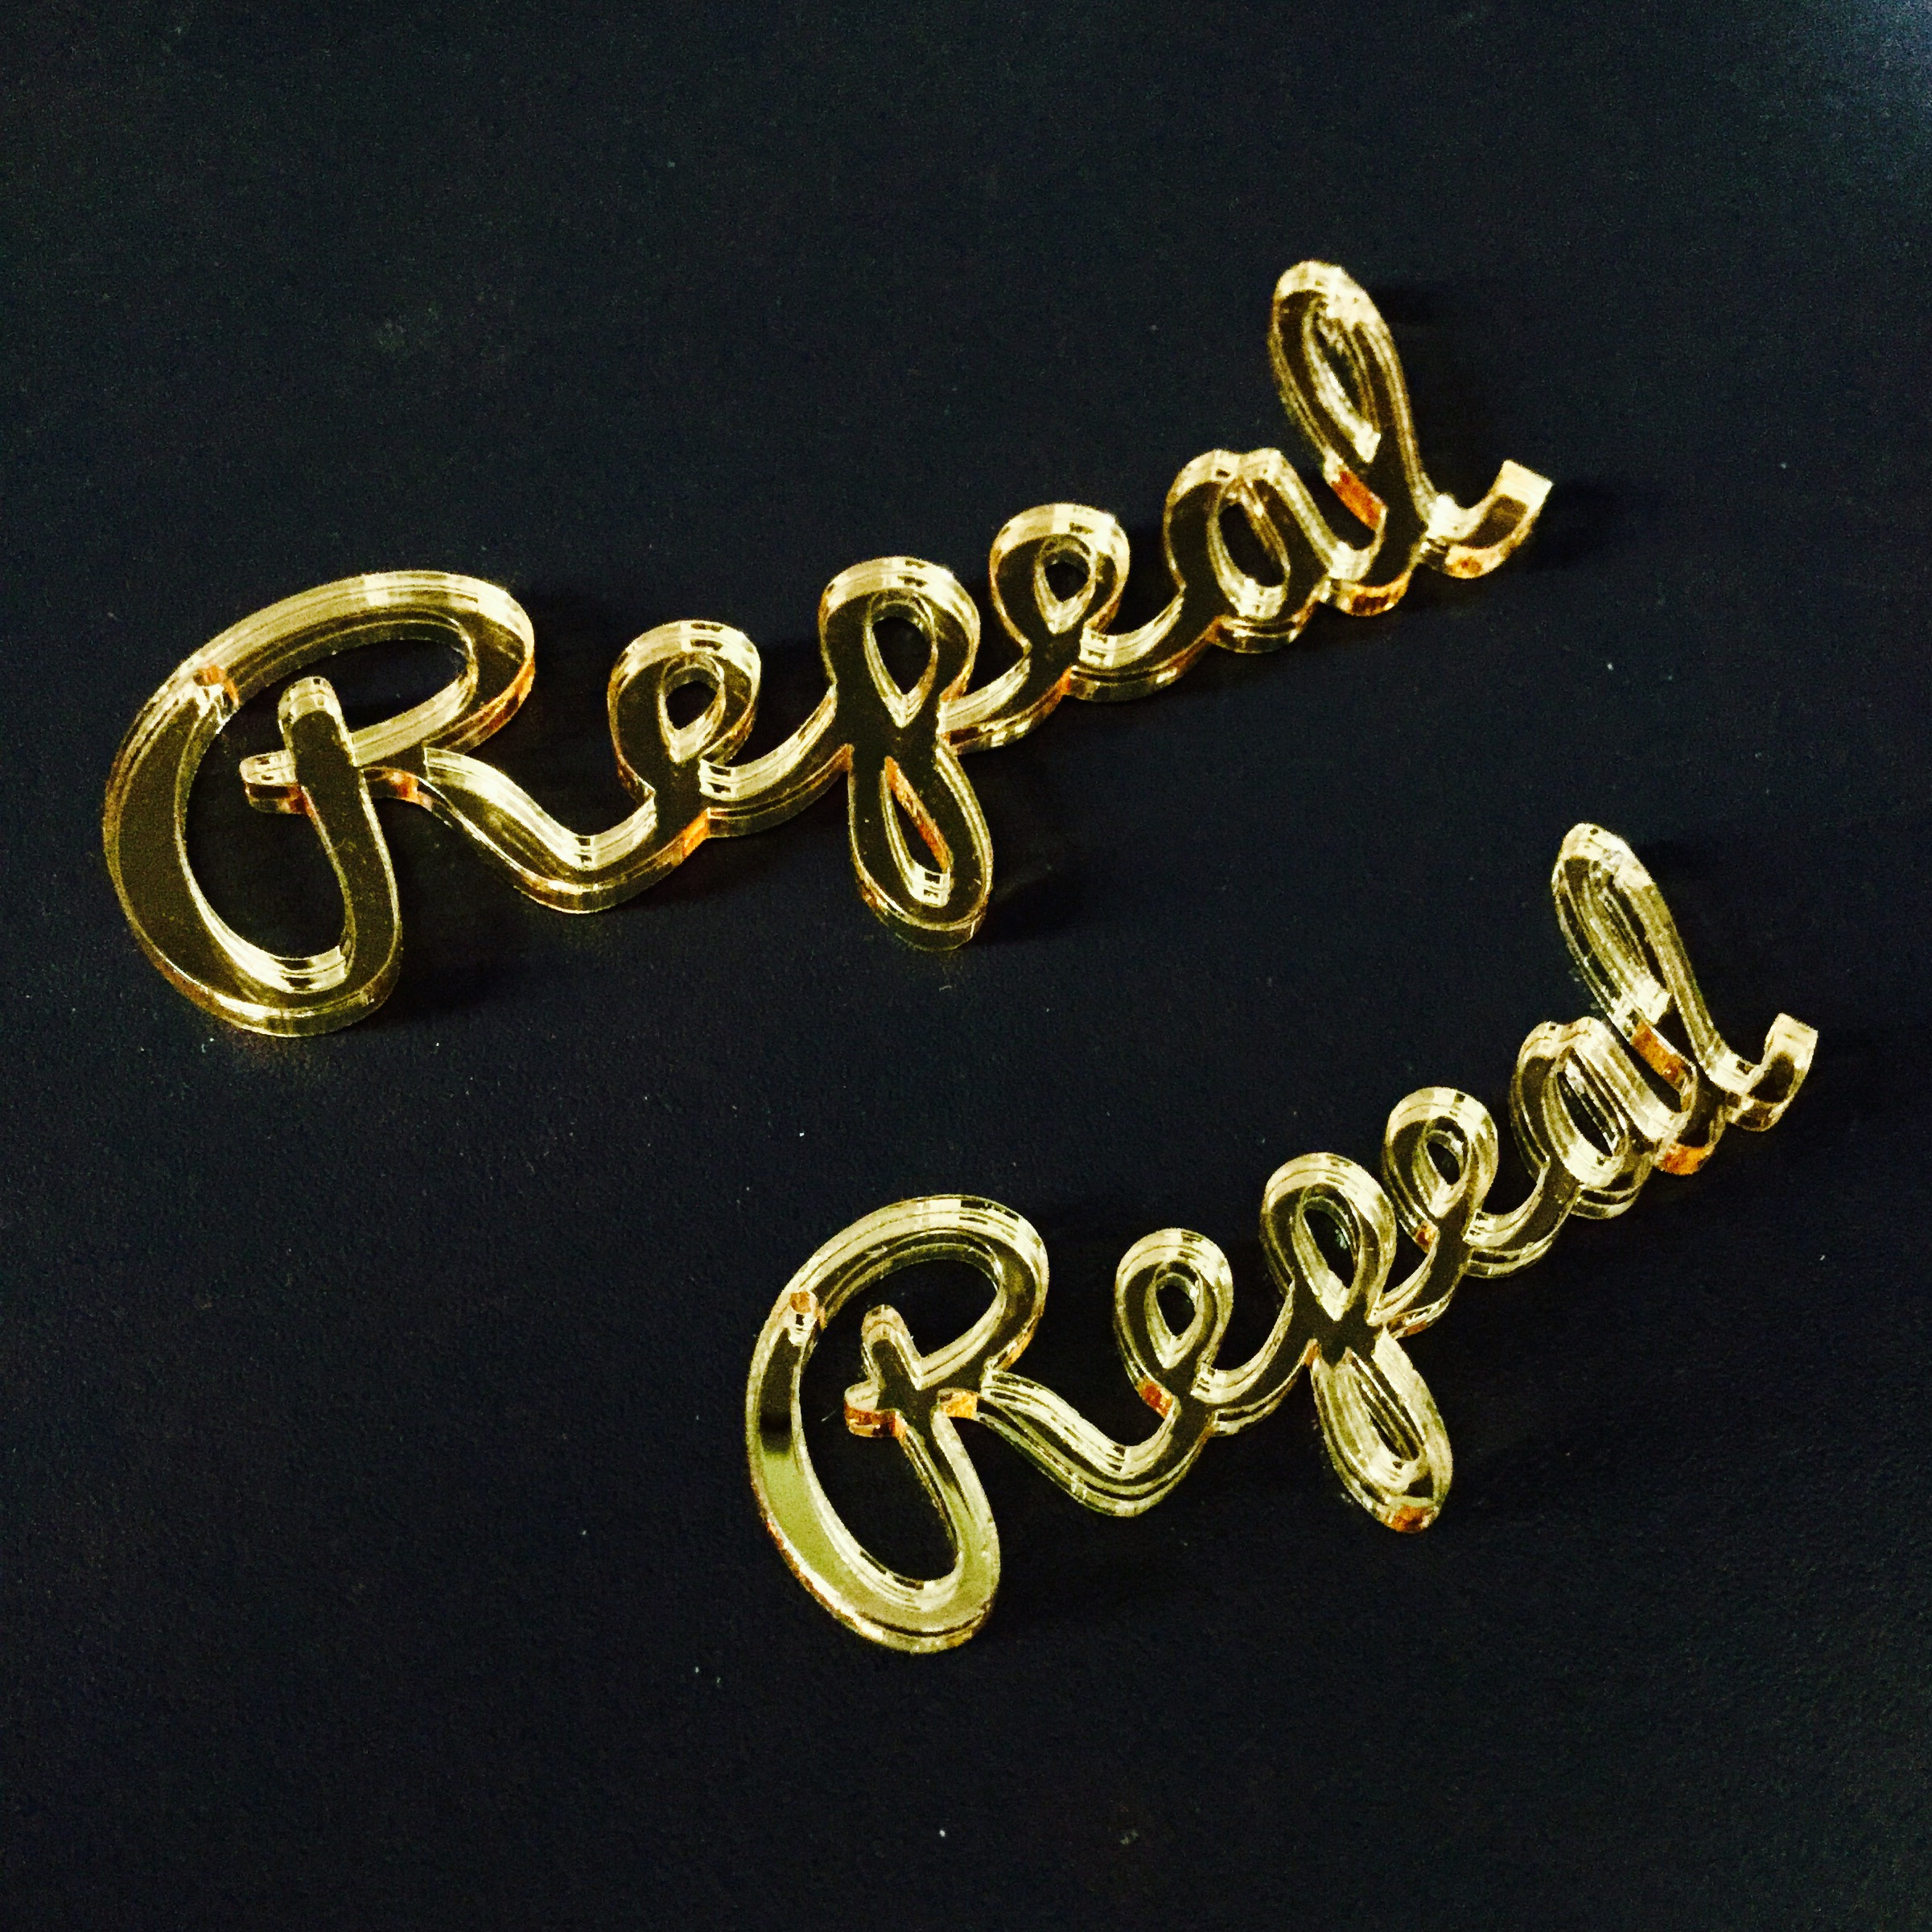 LIMITED EDITION Golden Repeal Chain